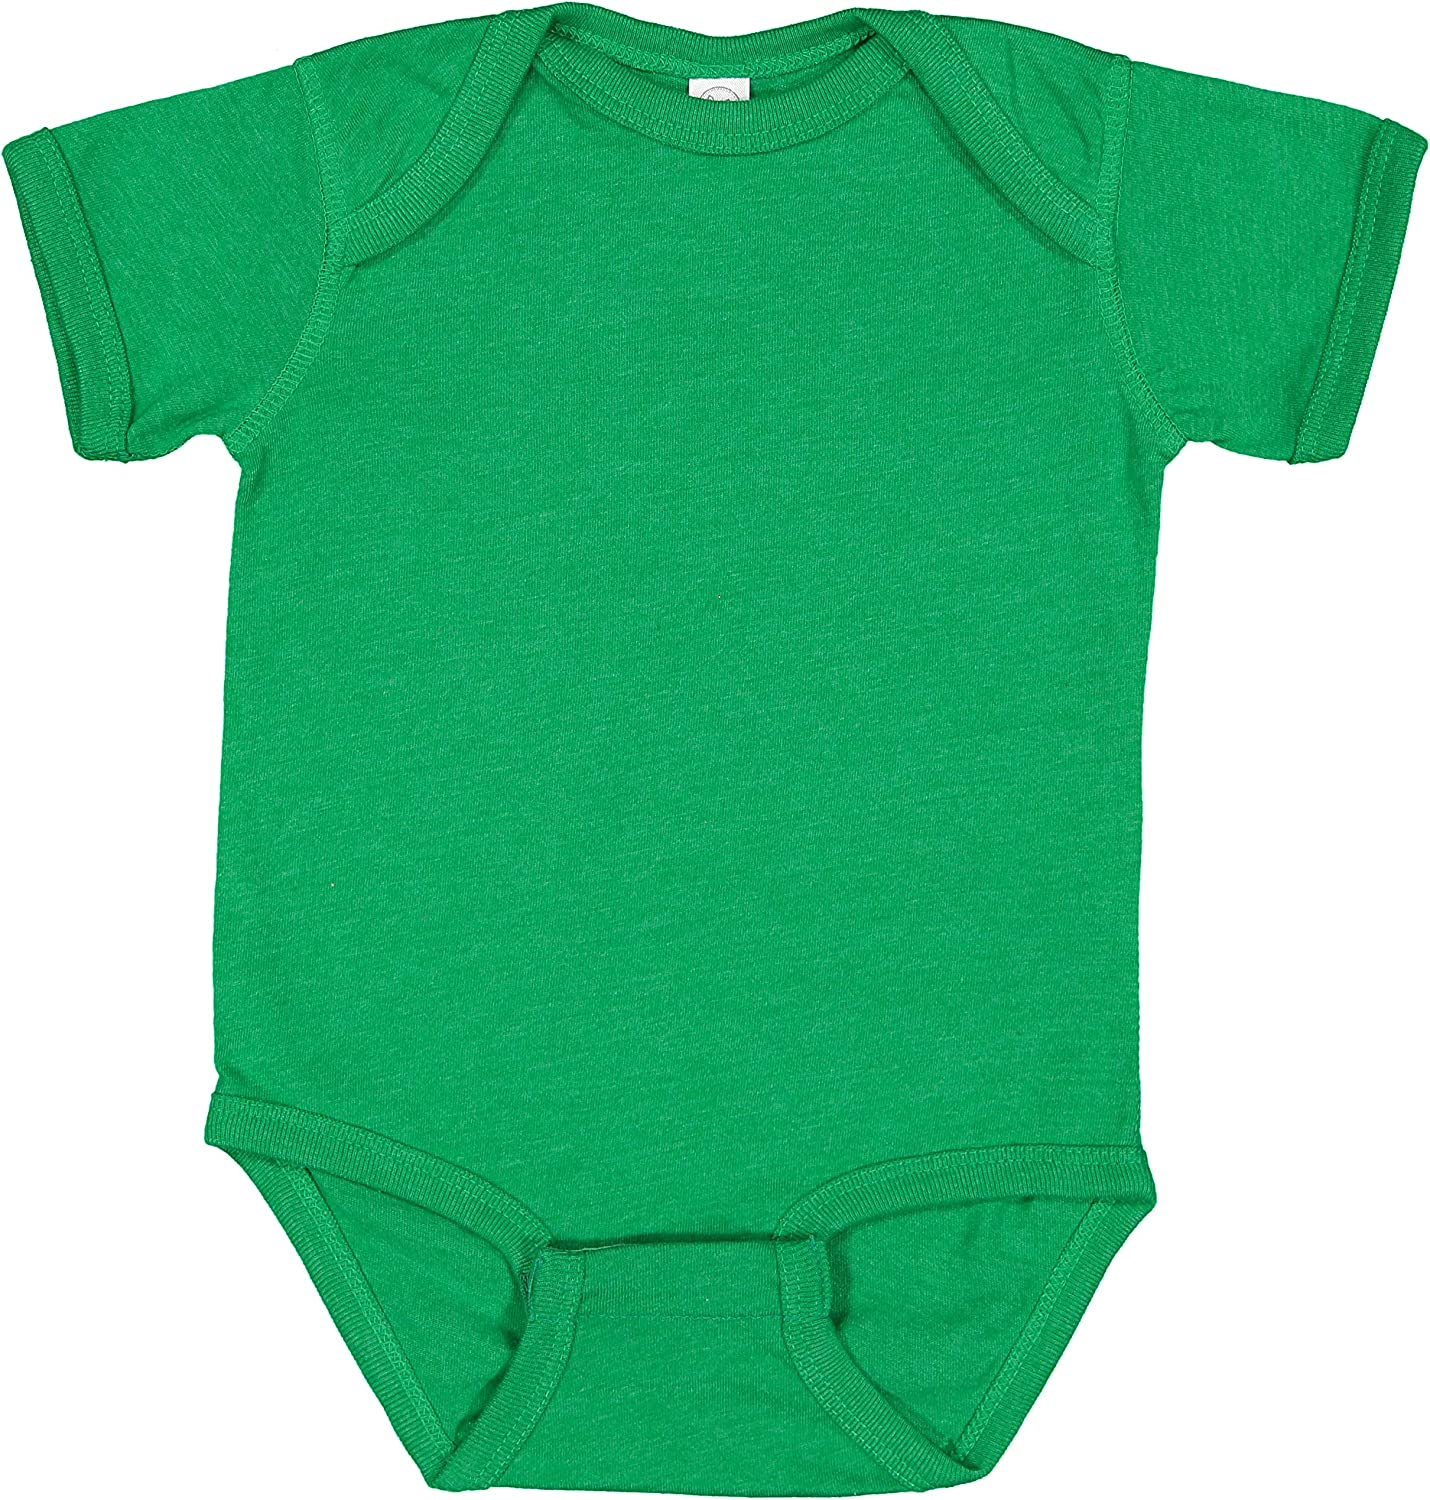 RABBIT SKINS Baby Soft Fine Jersey Short Sleeve Bodysuit